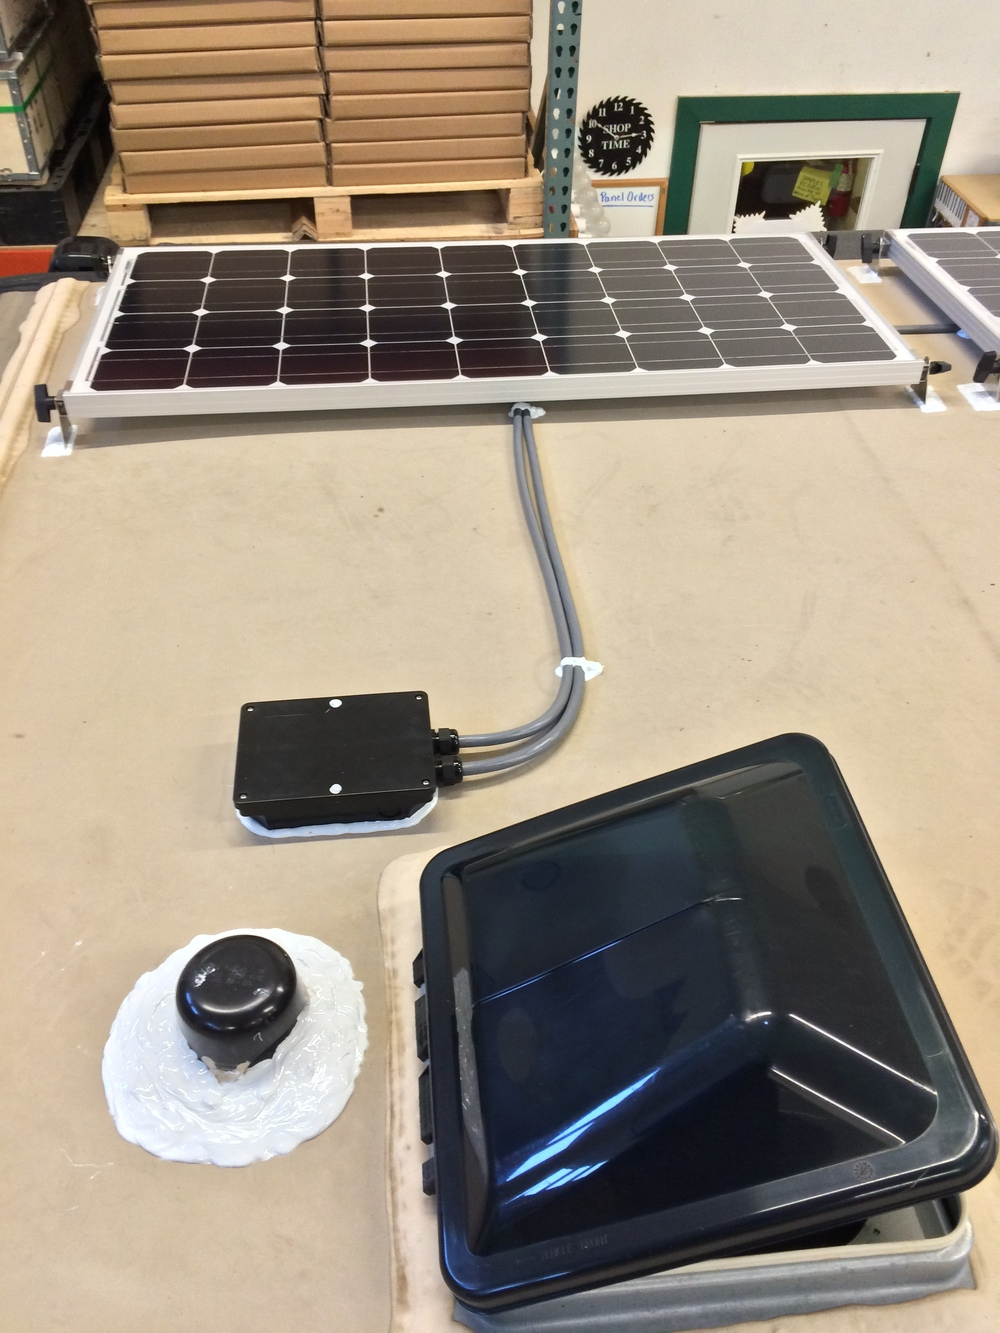 Solar panels and combiner box